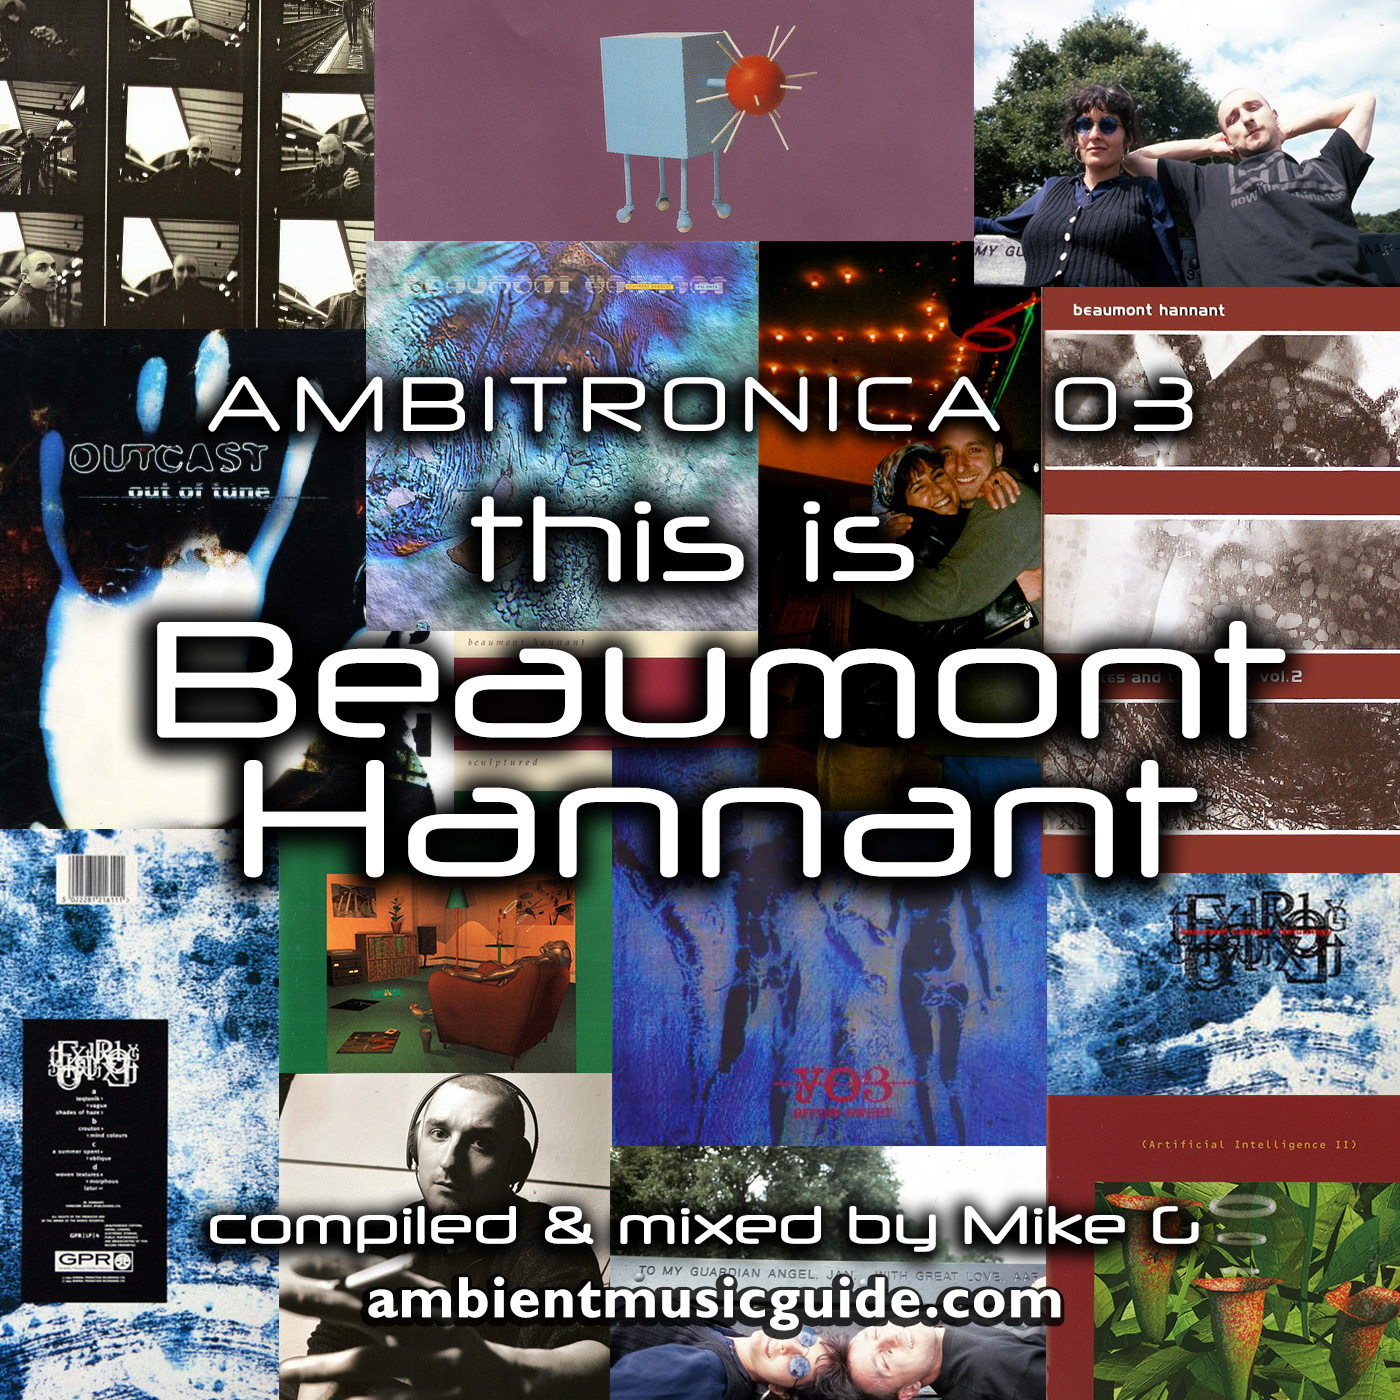 Ambitronica 03 This Is Beaumont Hannant compiled & mixed by Mike G